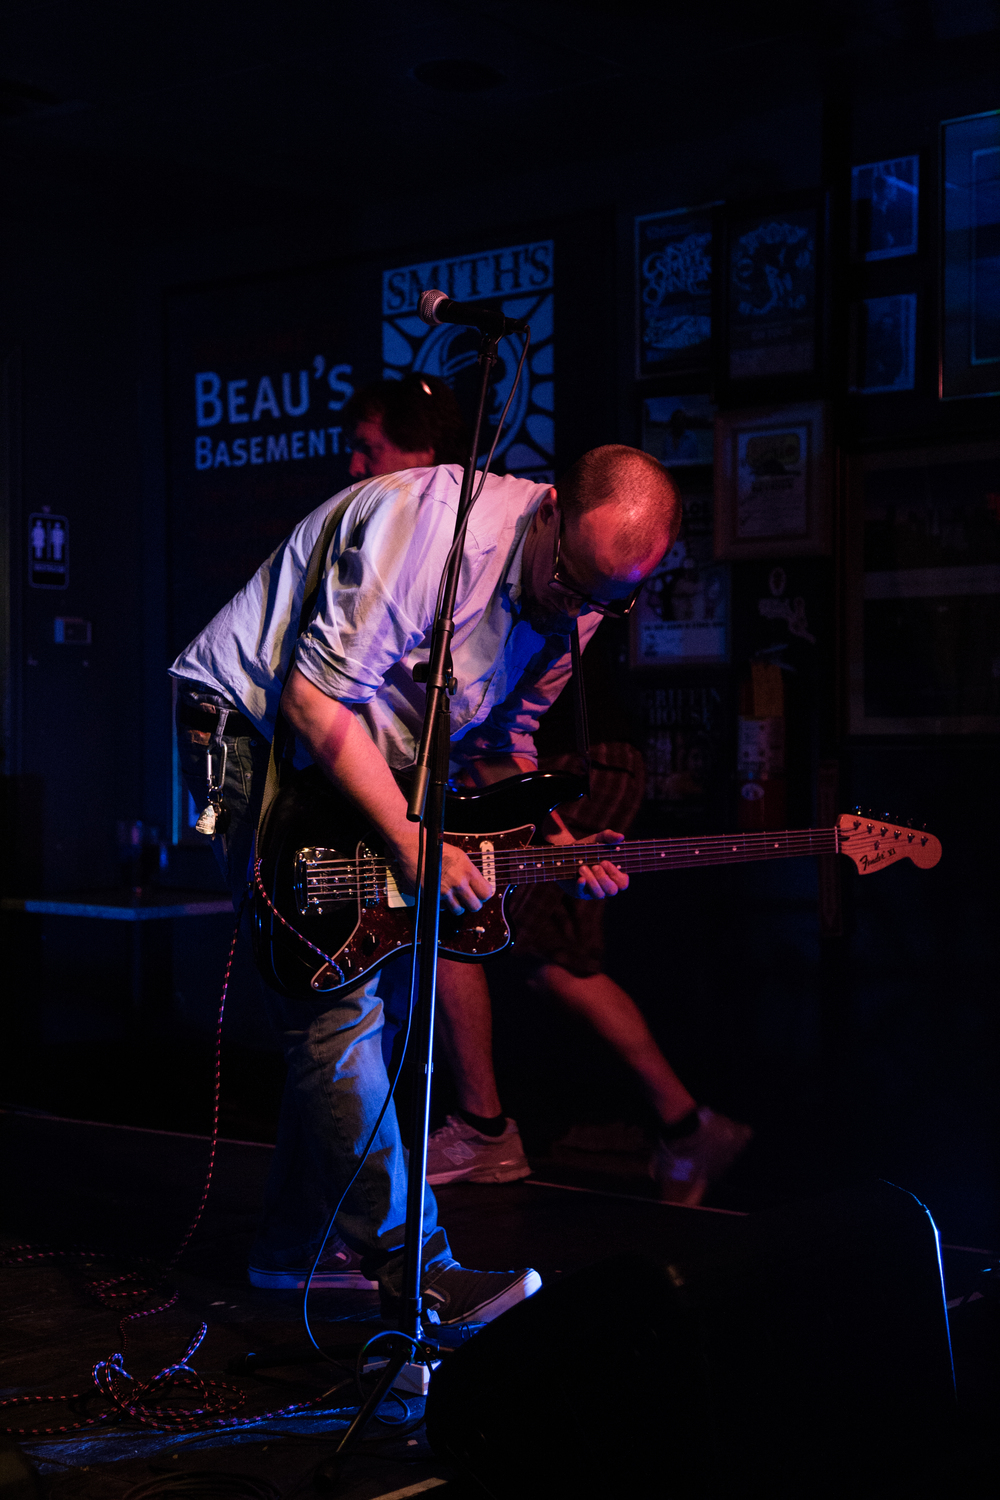 Blackfox - 7-25-2014 @ Smith's Old Bar-1.jpg